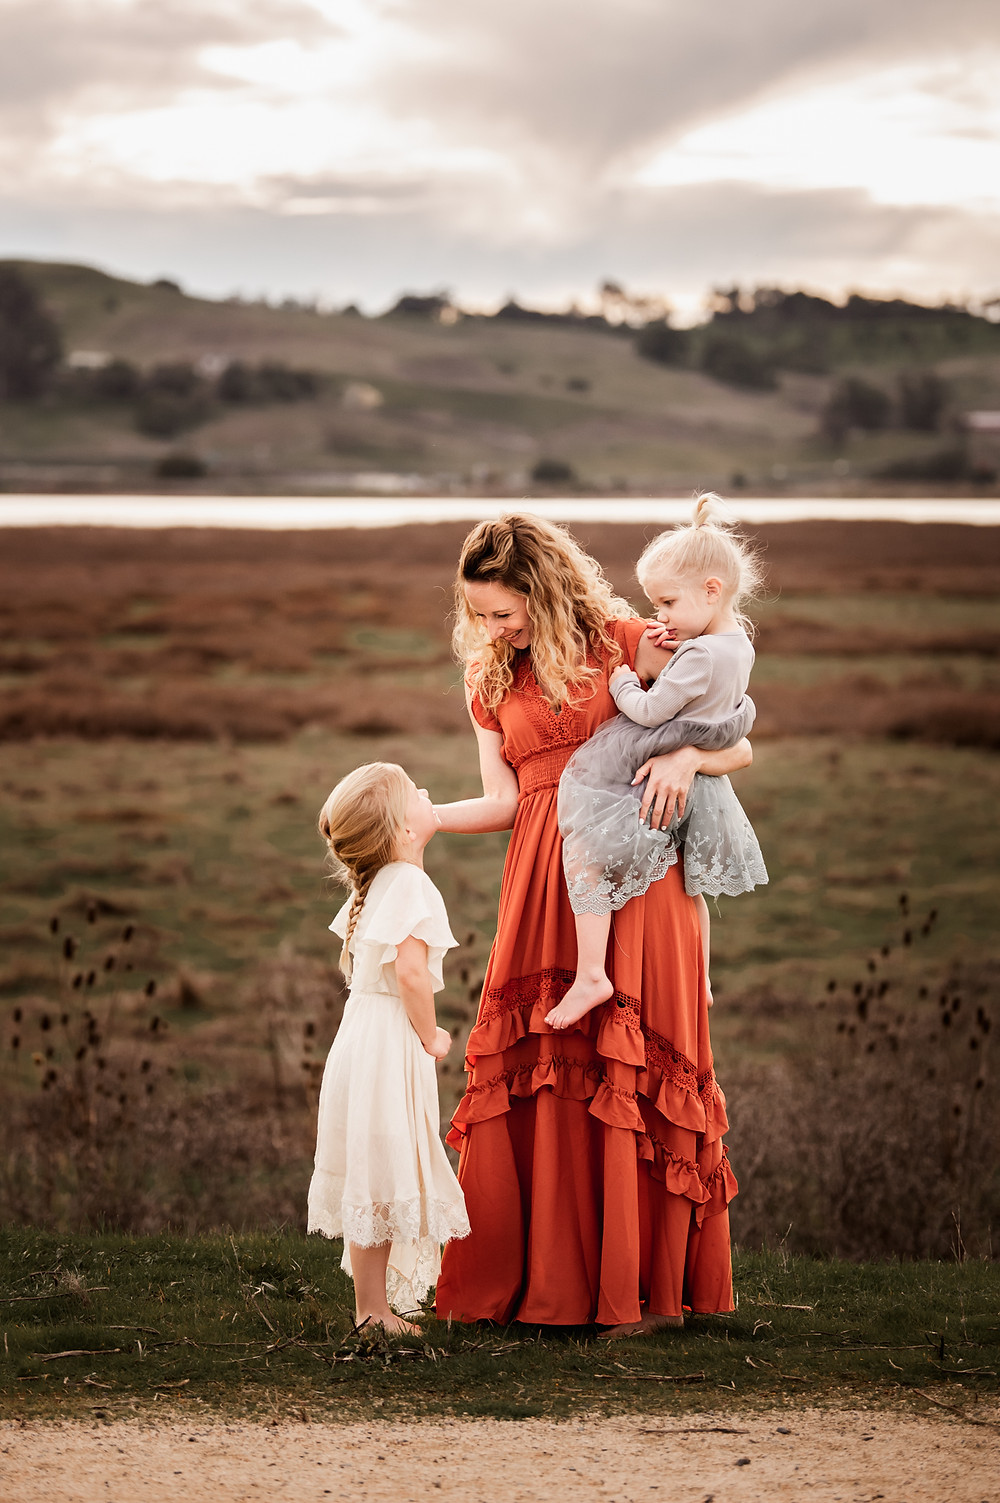 mom looking loving down at her daughter while holding the other daughter in her other arm, long red maxi dress, water in background, sunset, petaluma, Sonoma County family photographer for Sonoma County, Diana Jex Photography